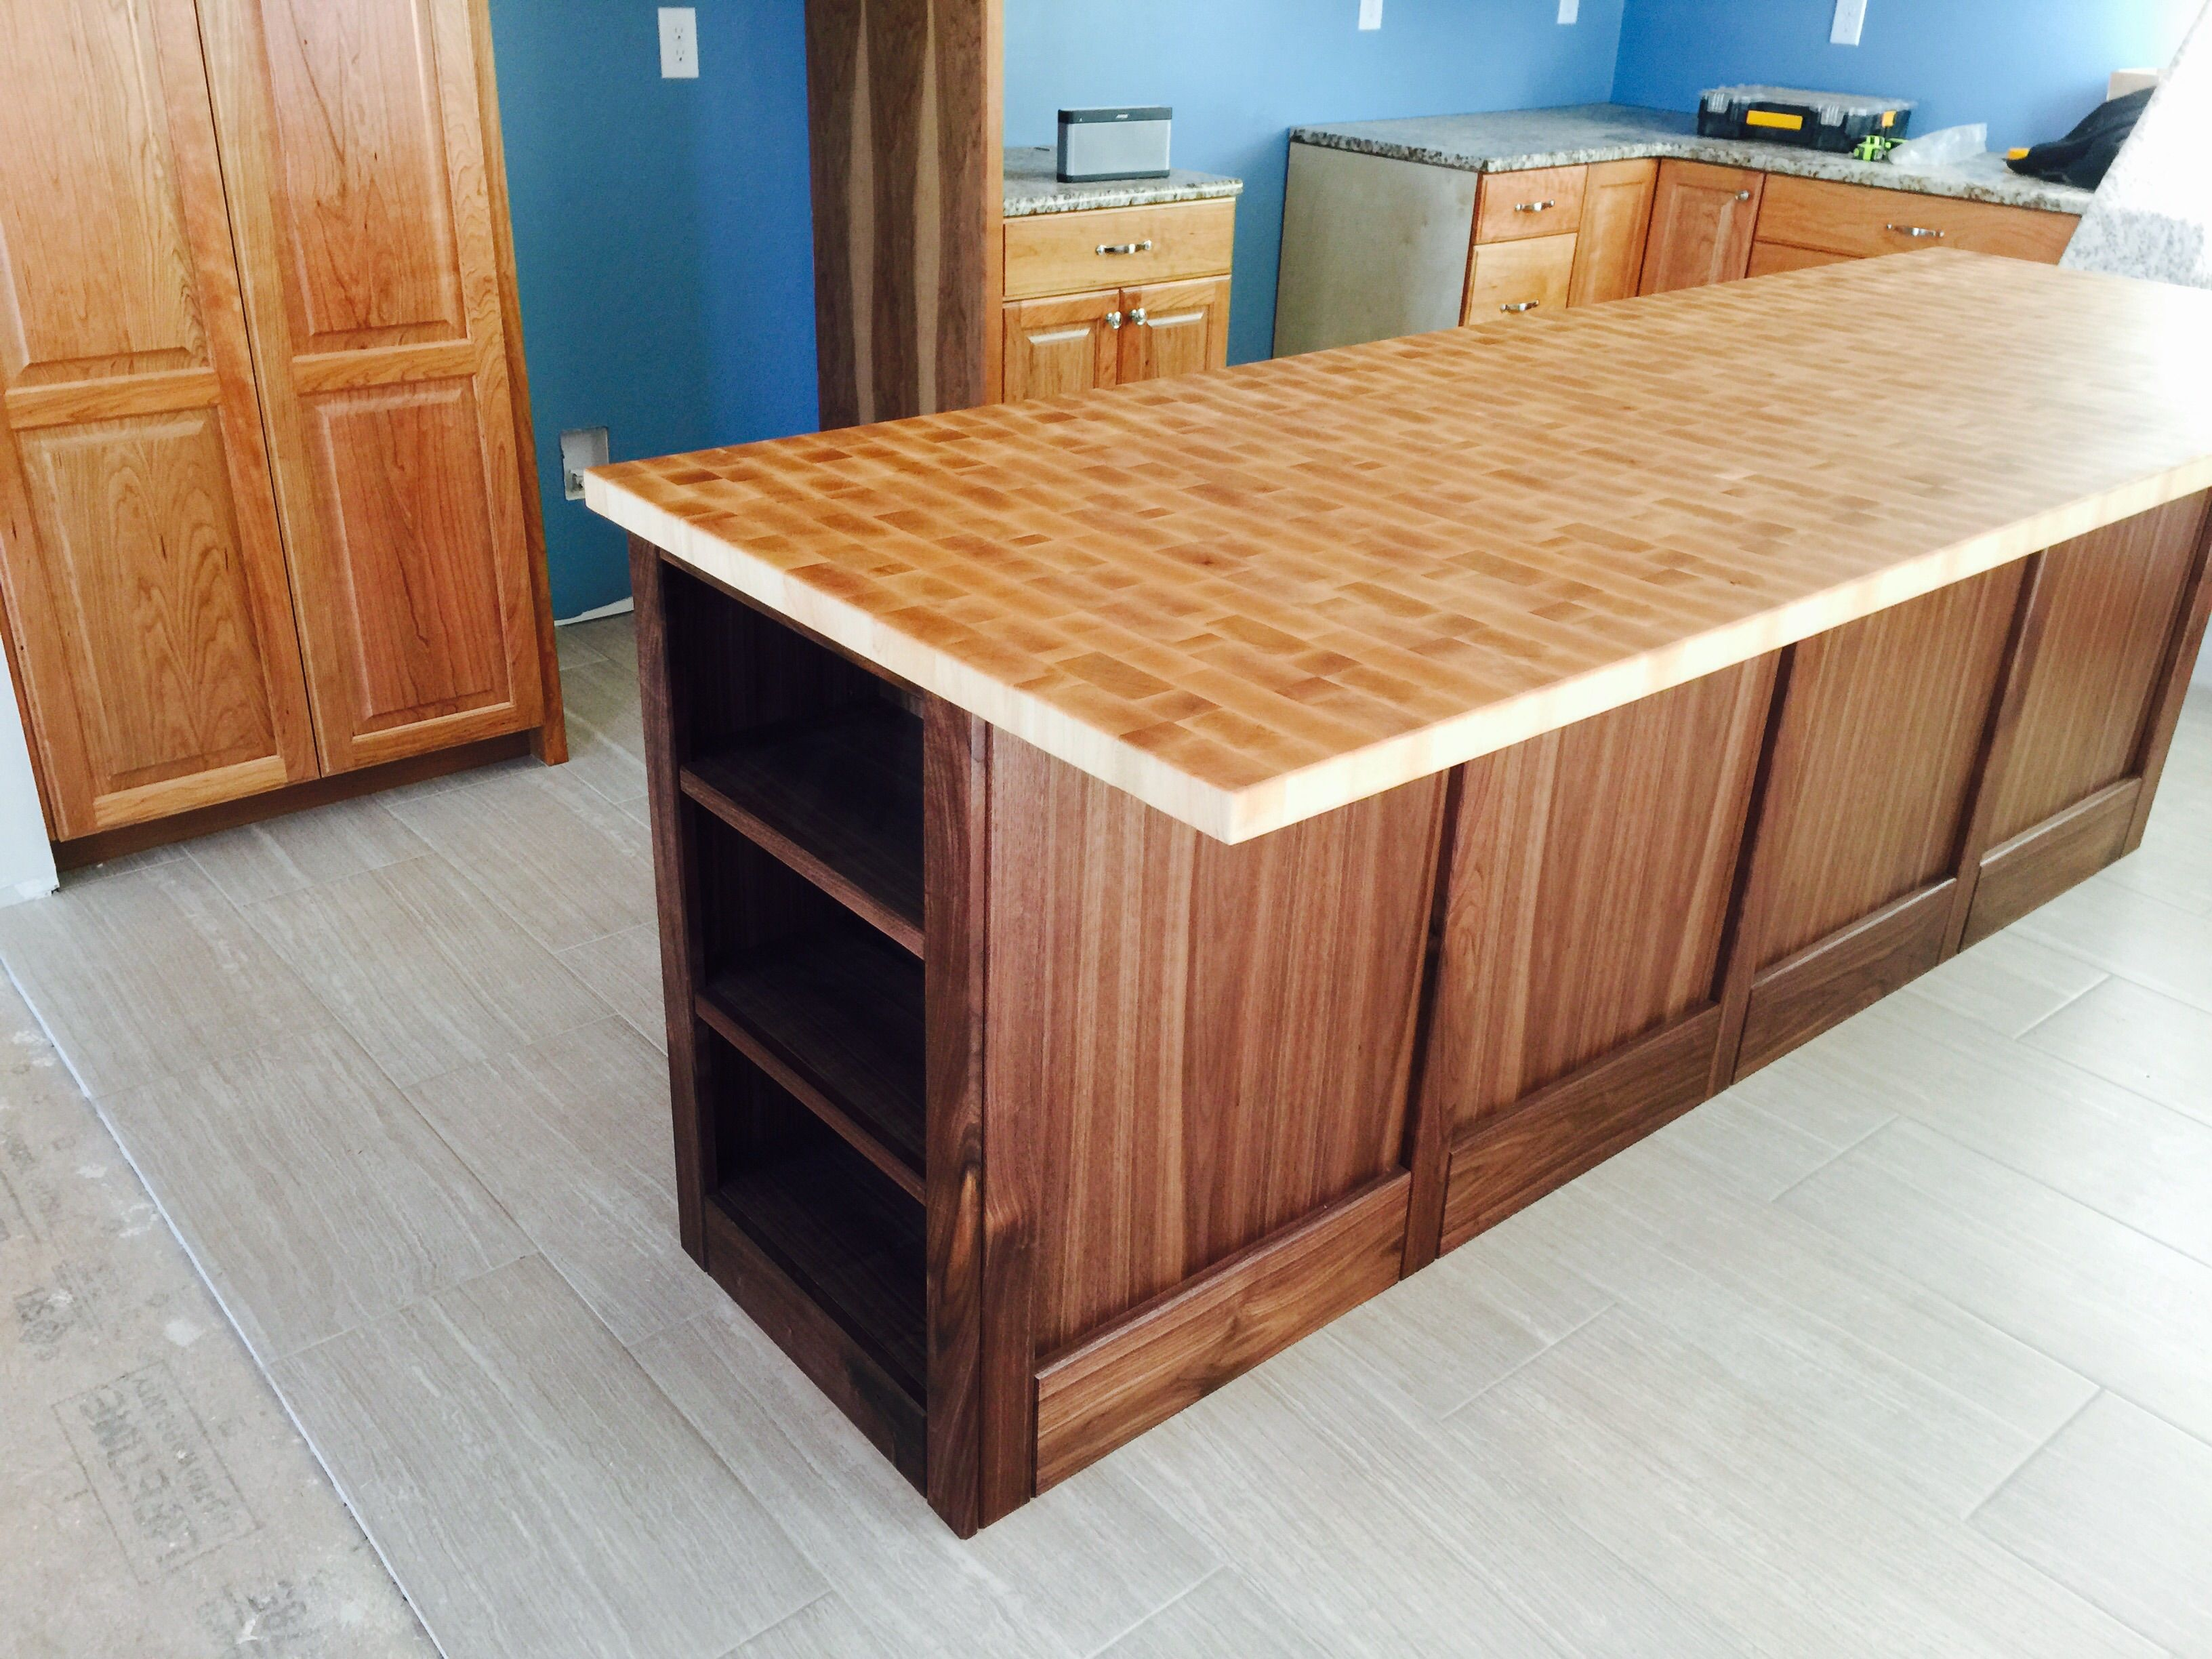 buy a custom butcher block kitchen island made to order